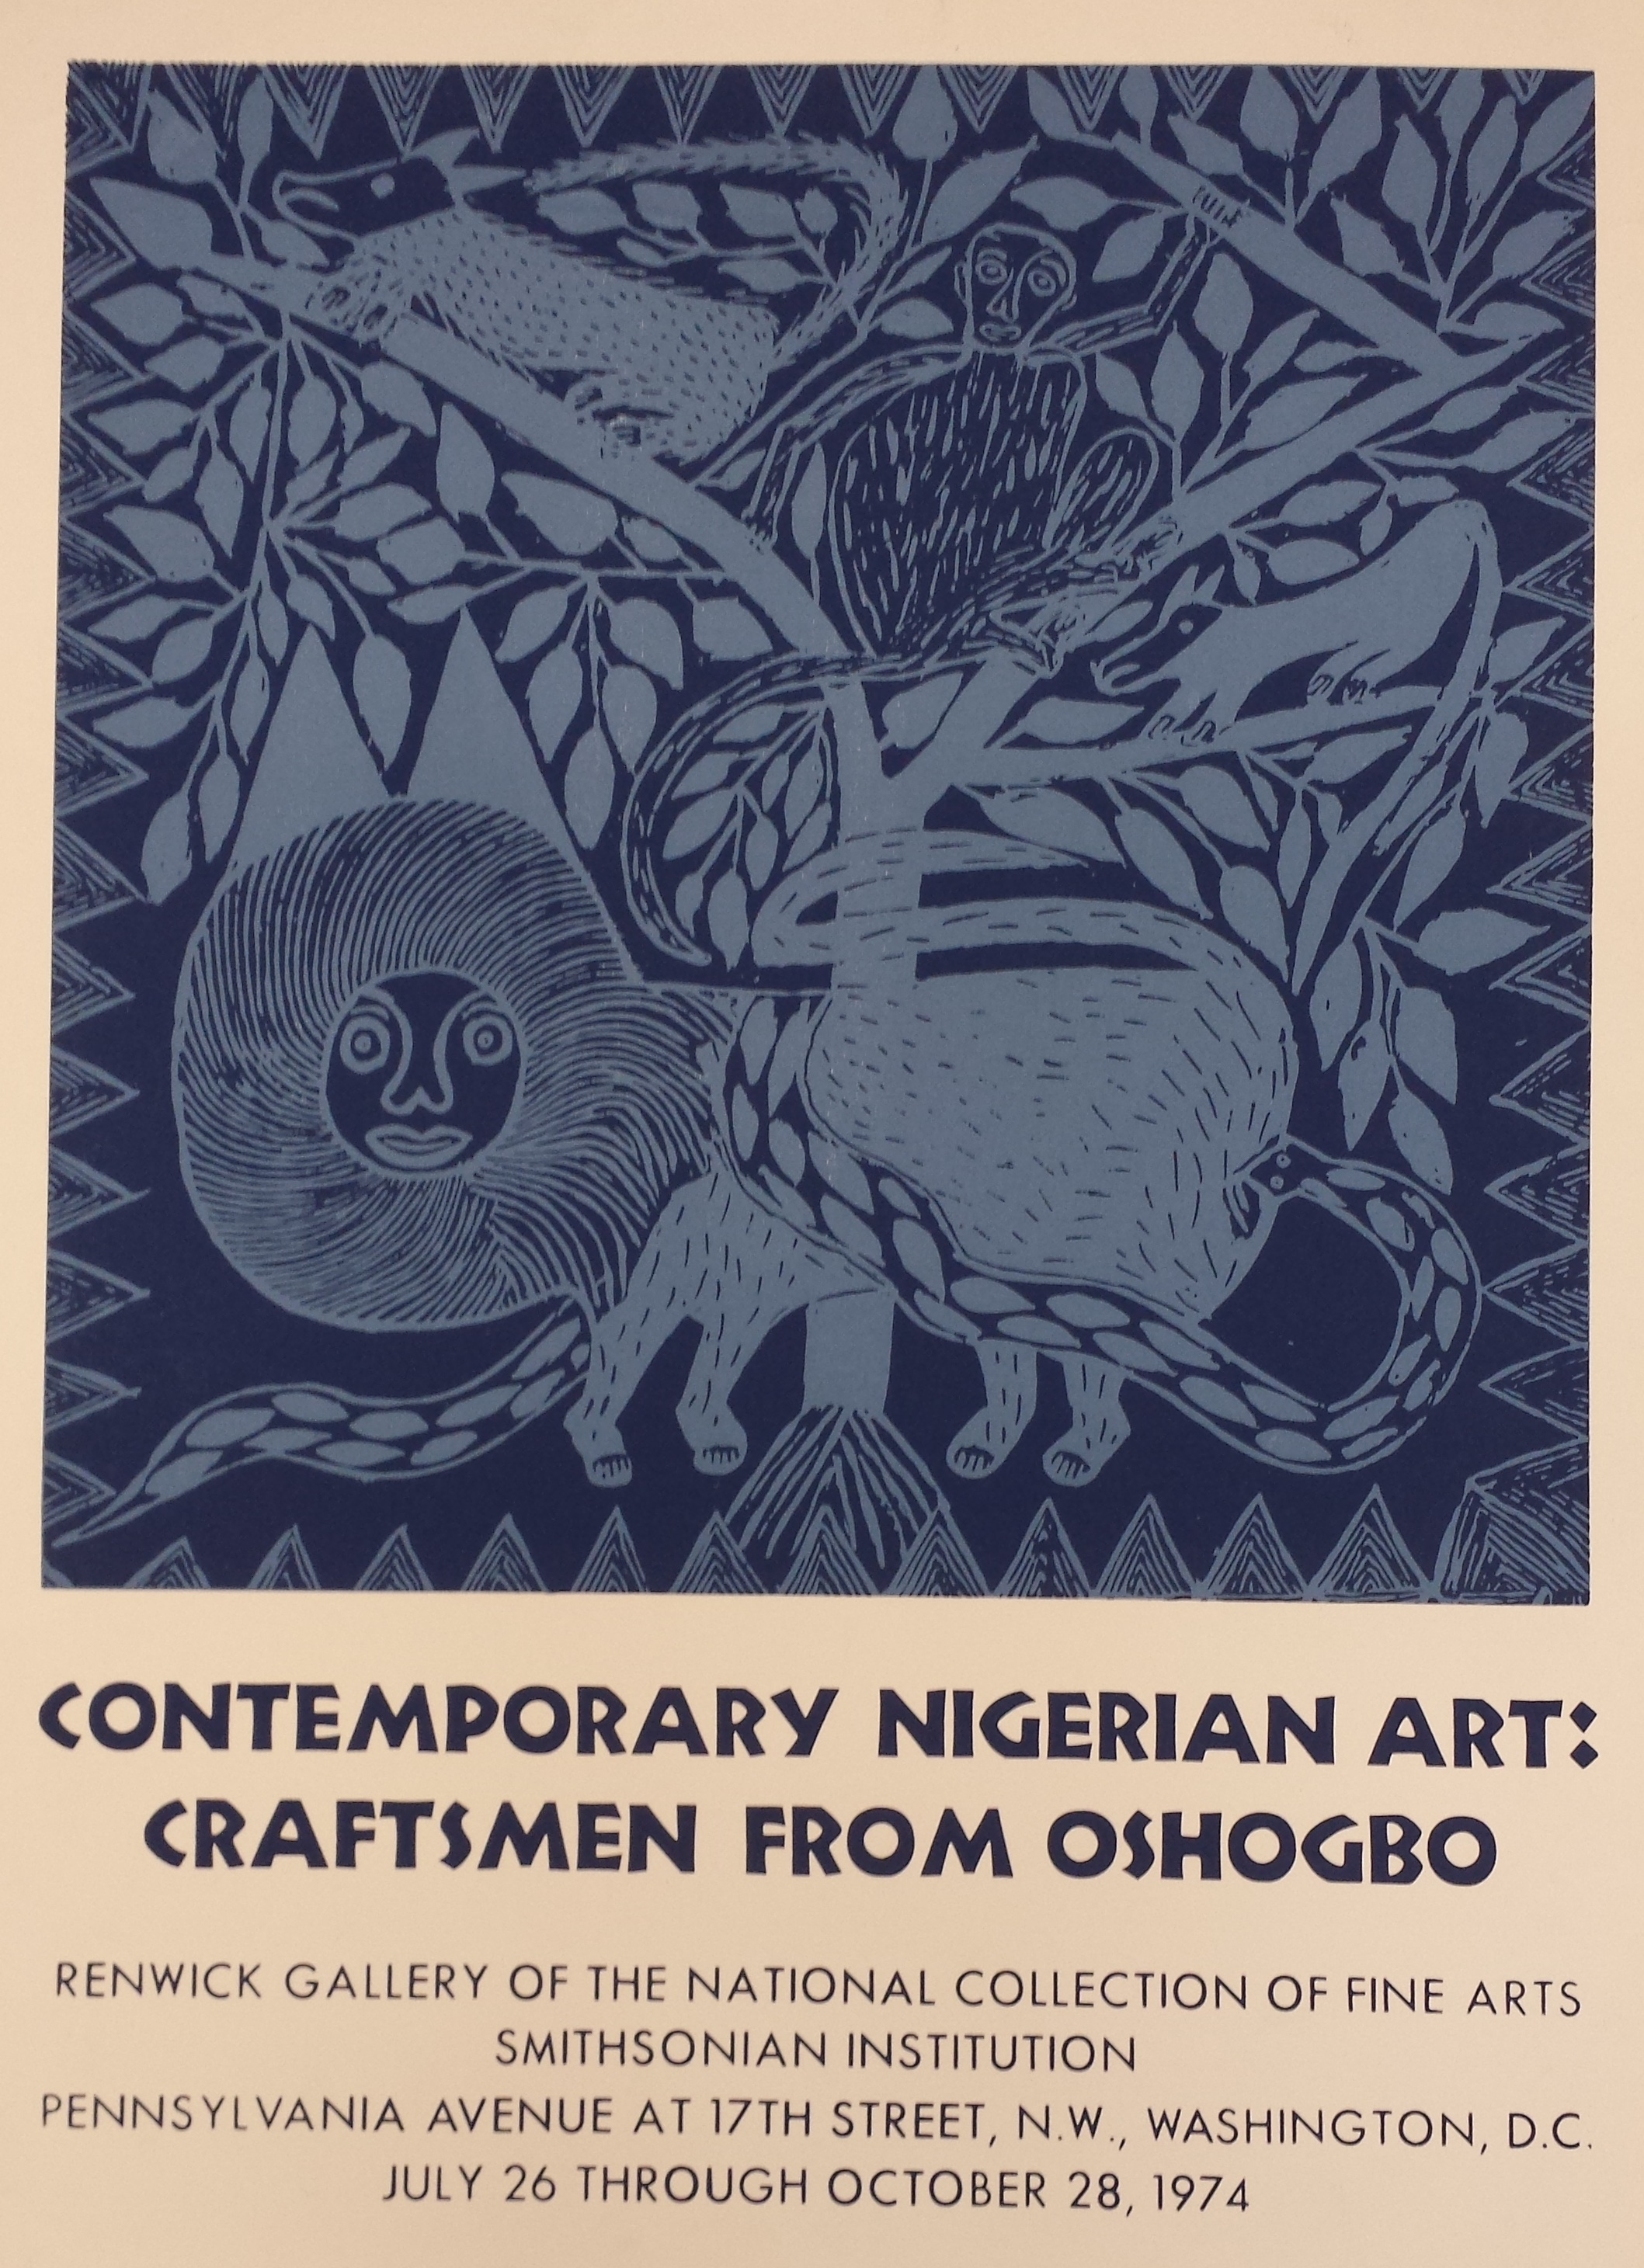 Contemporary Nigerian Art: Craftsmen from Oshogbo, 1974.